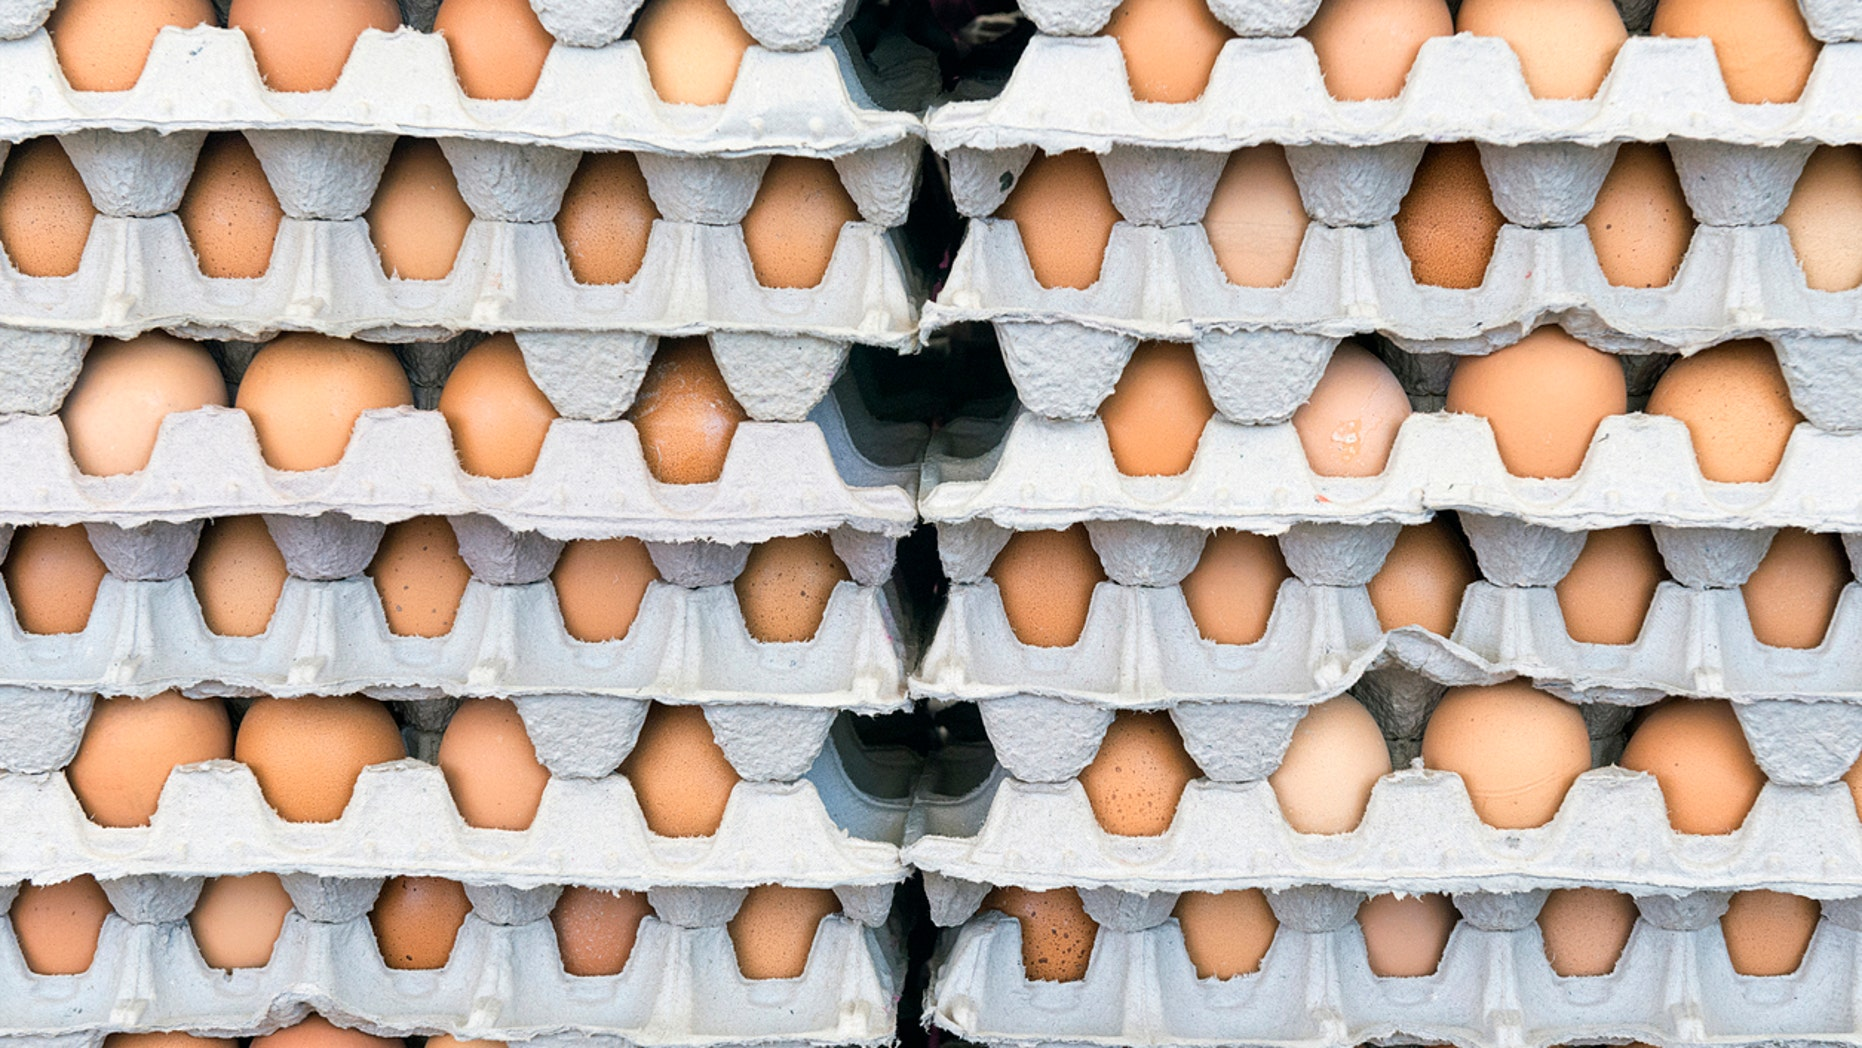 A total of 35 people contracted salmonella linked to the massive egg recall that was announced in mid-April.